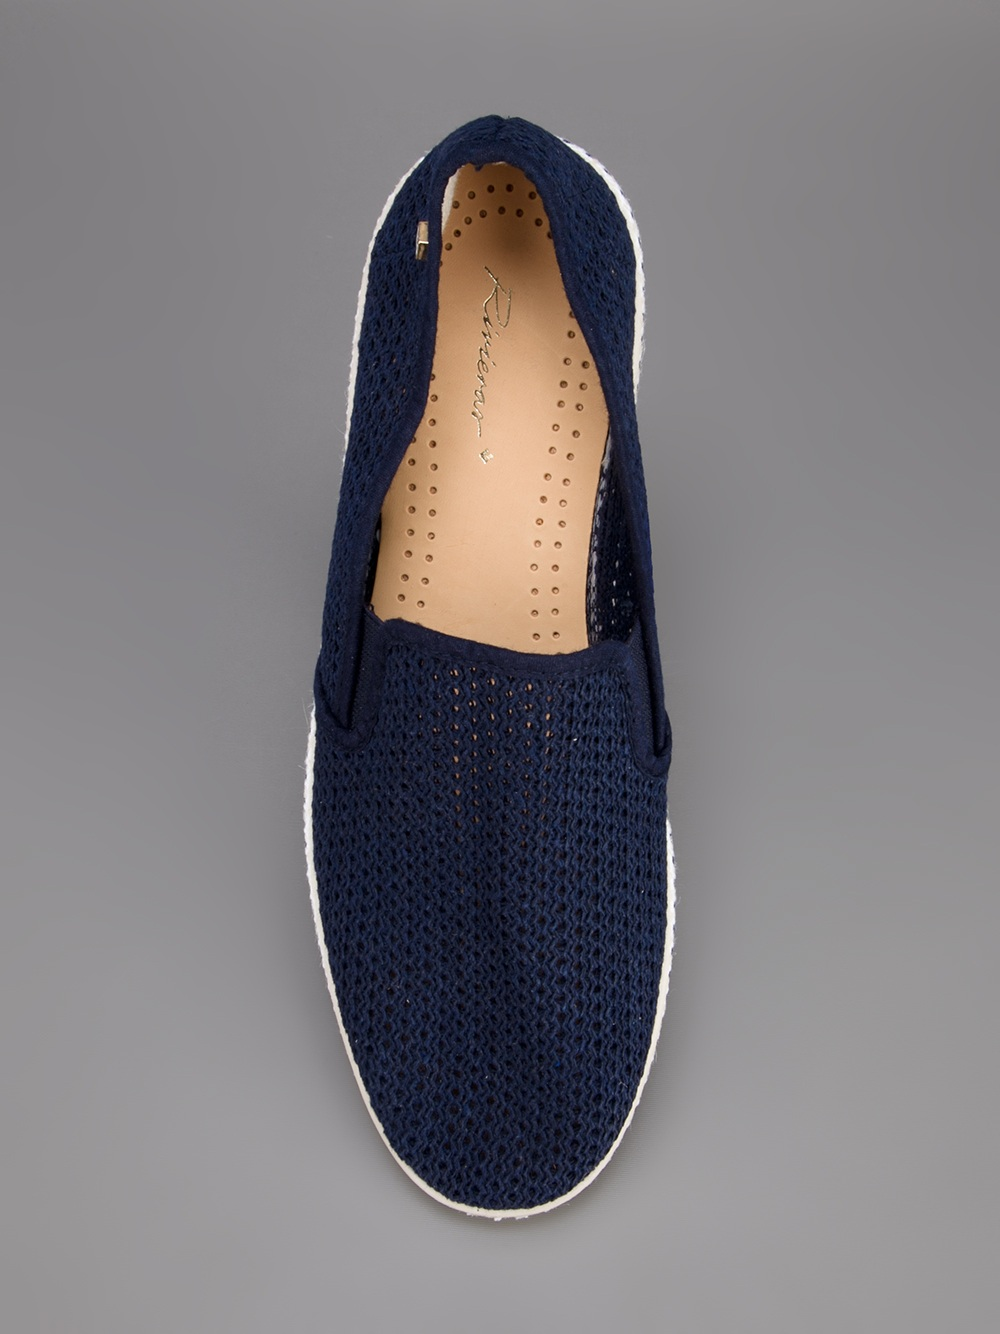 riviera mesh slip on shoe in blue for navy lyst